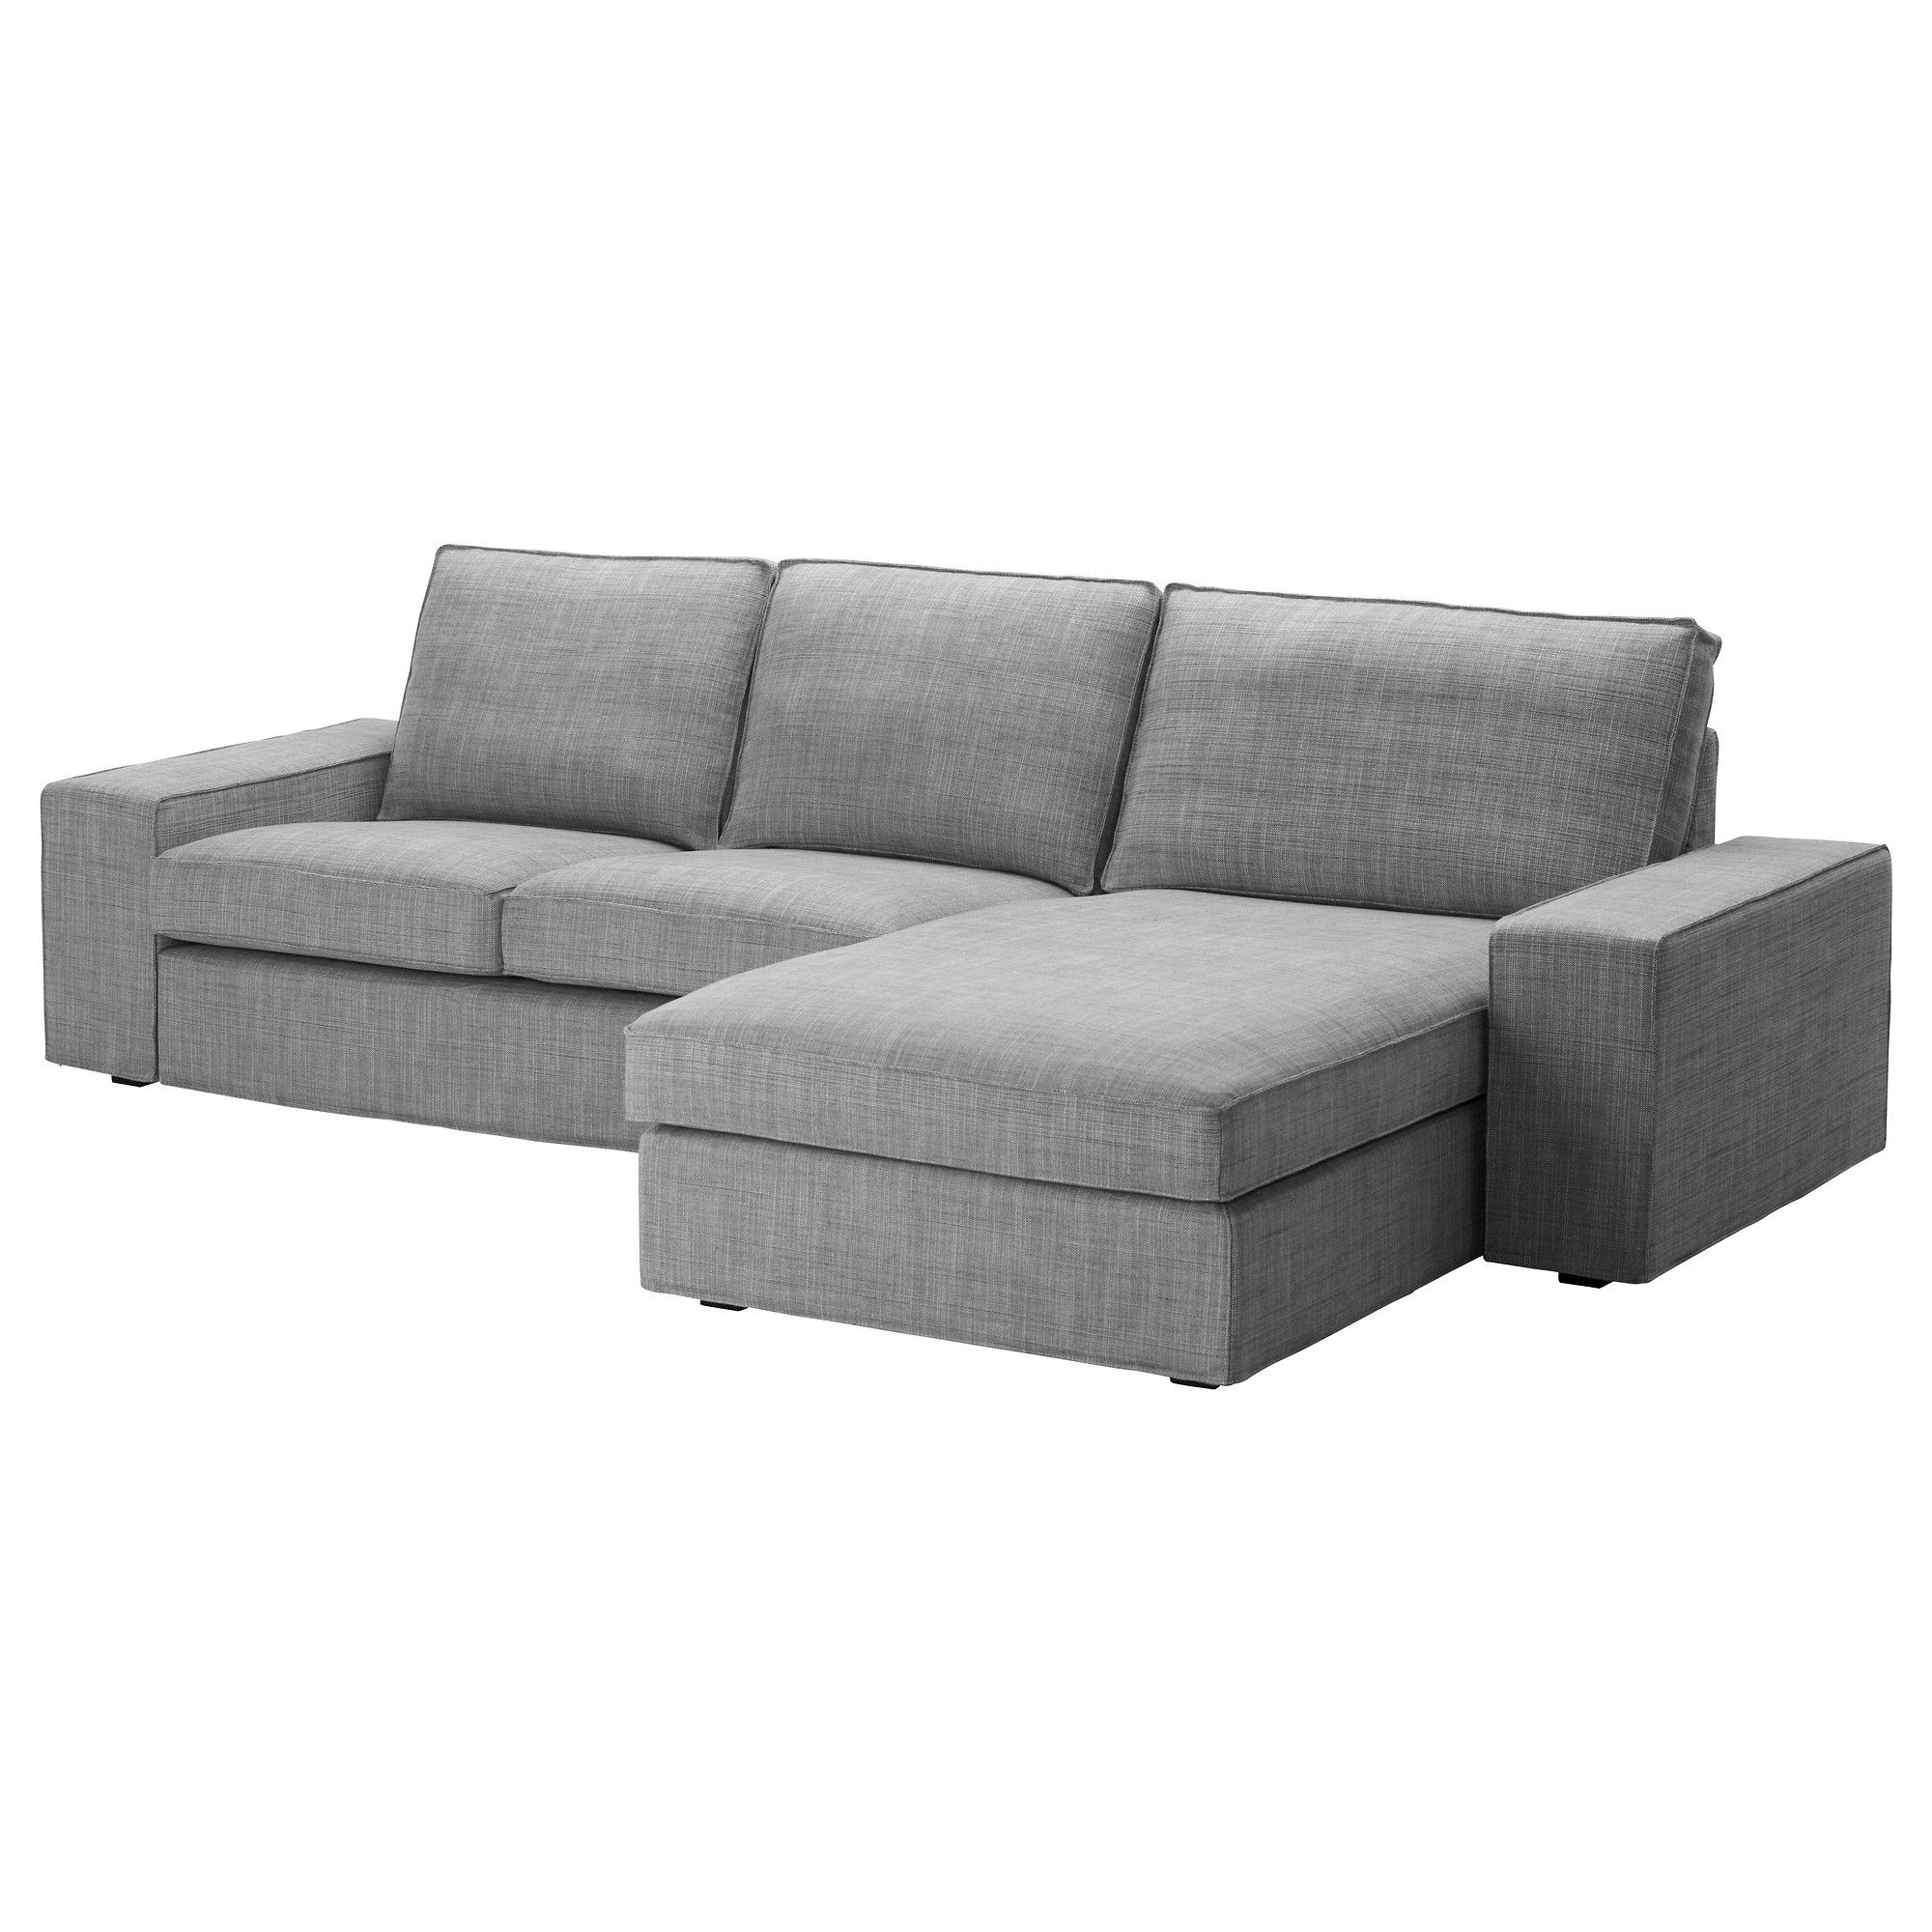 Recamiere ikea ektorp  KIVIK Loveseat and chaise lounge - Isunda gray - IKEA $879 | House ...